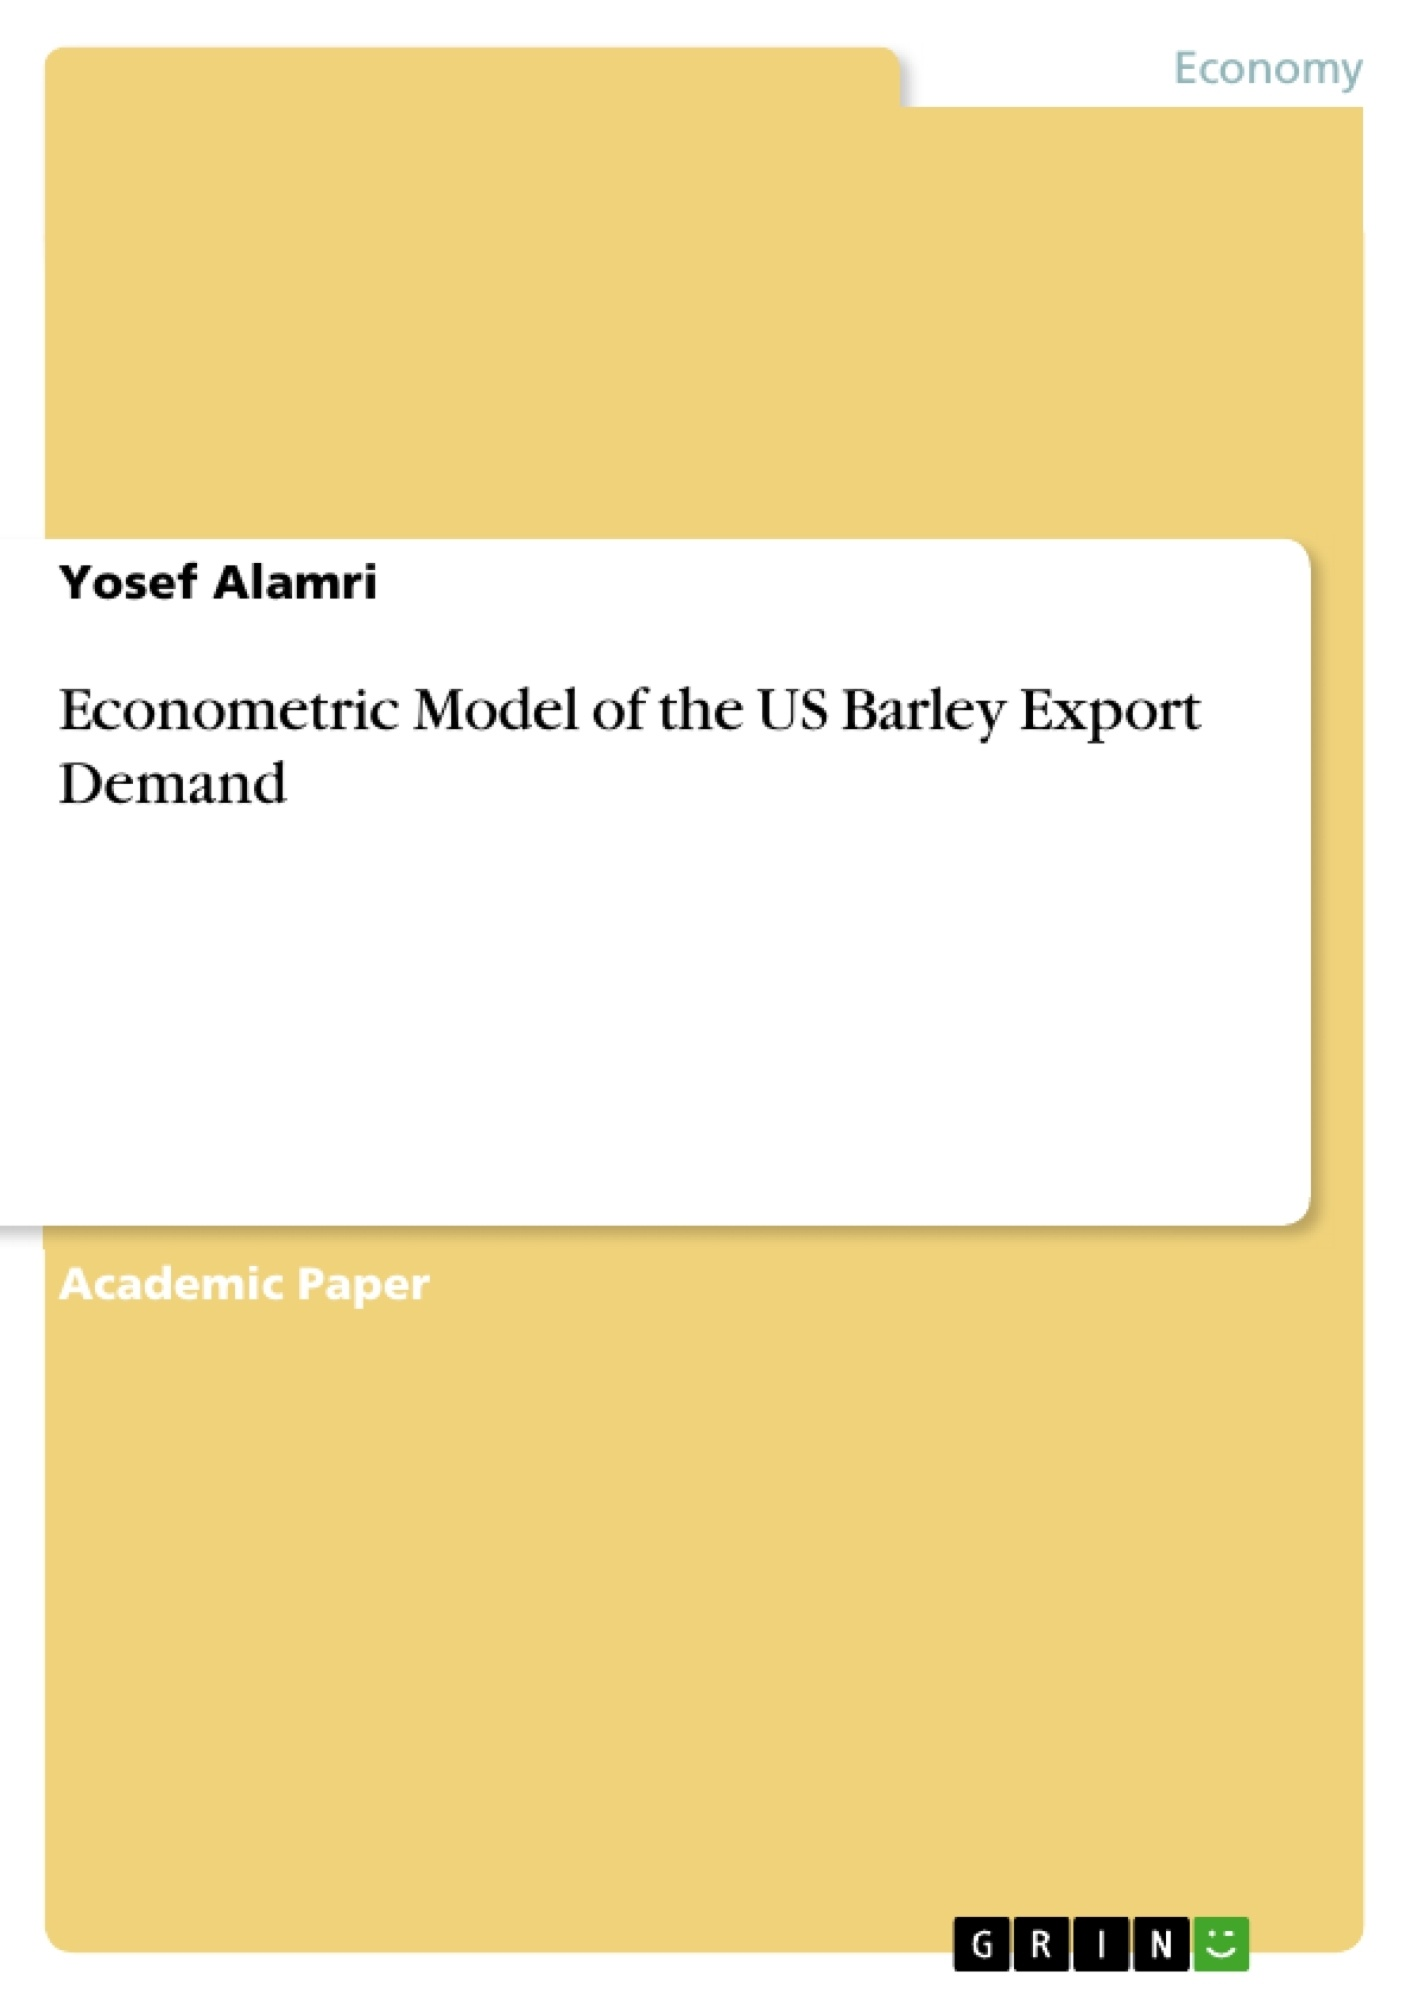 Title: Econometric Model of the US Barley Export Demand